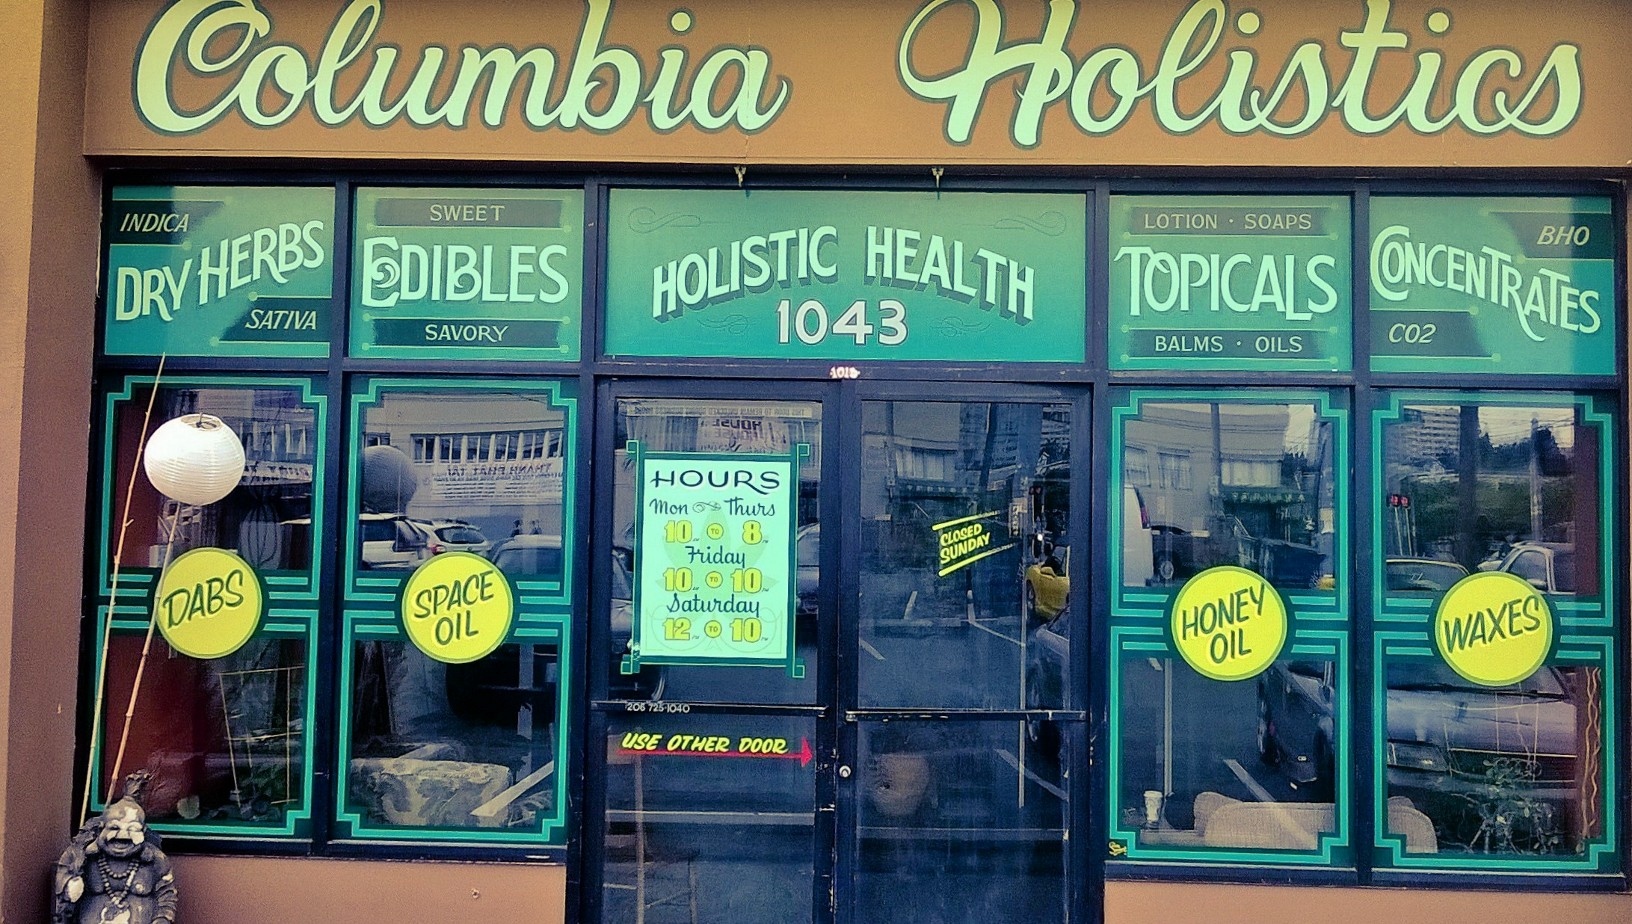 LAWSUITS FILED Against the City Of Seattle + Interview with Columbia Holistics